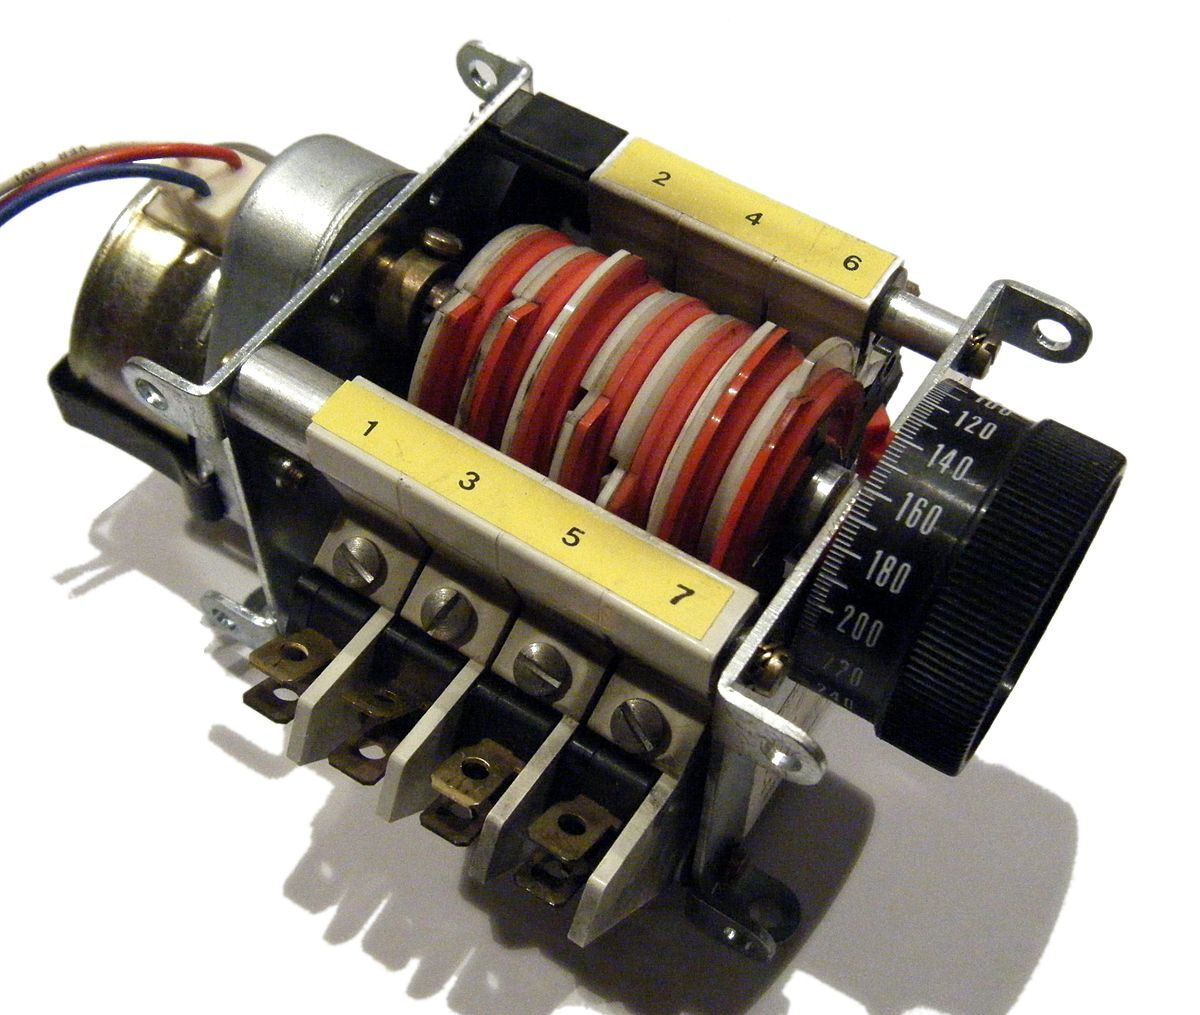 Cam timer wikipedia for Electric motor timer control